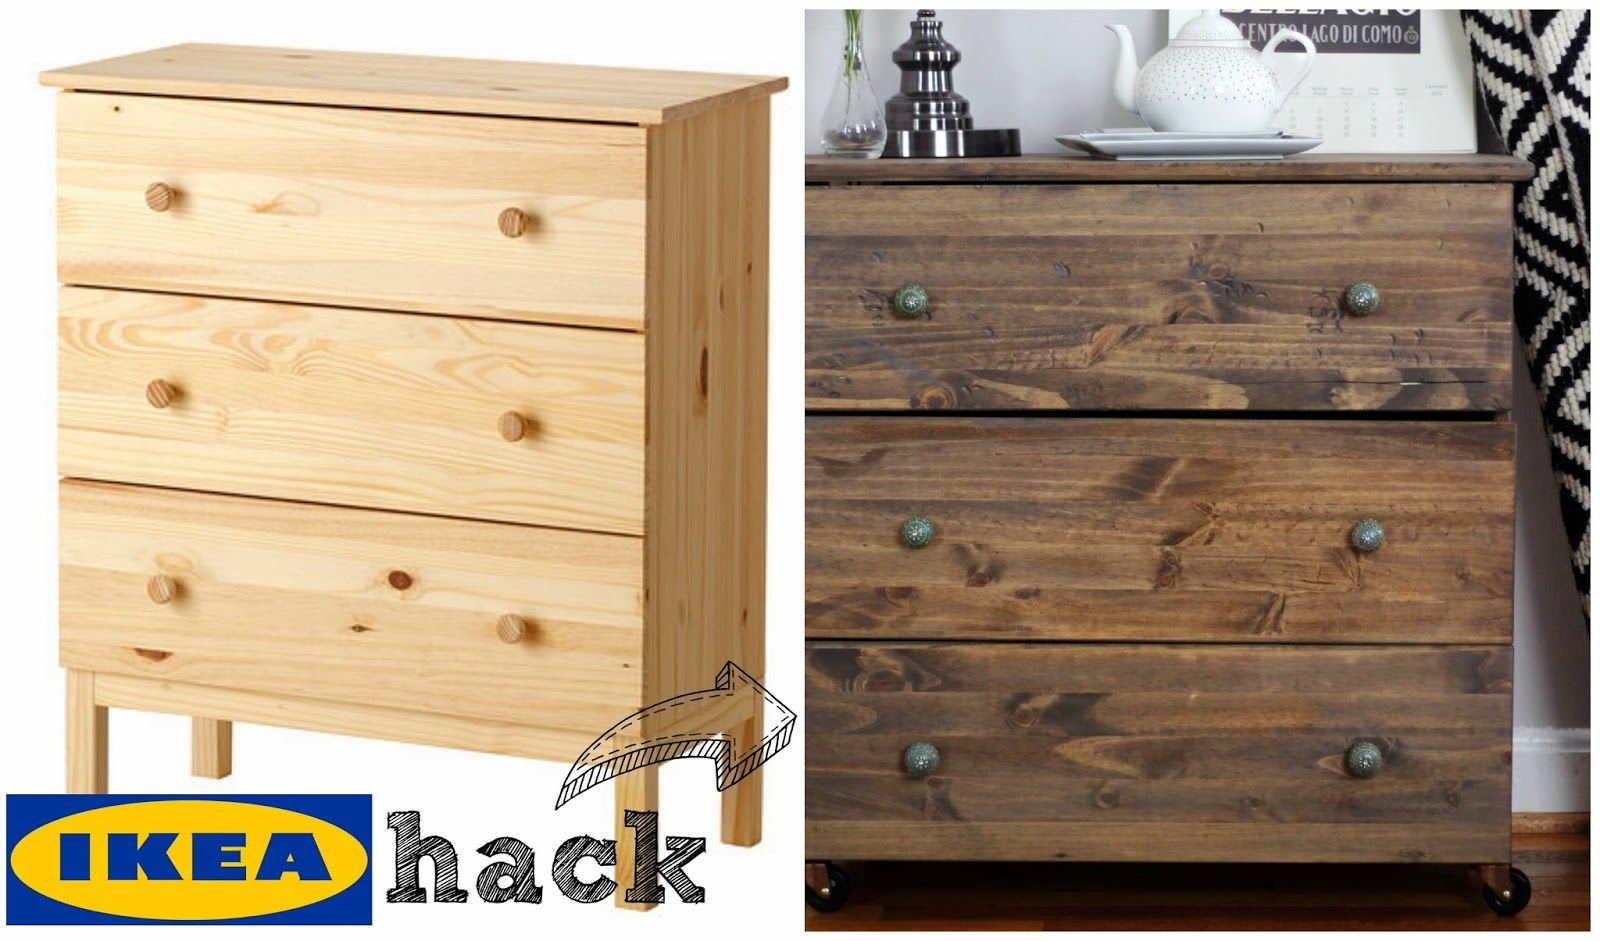 Ikea hack restoration hardware inspired bedside table for Restoration hardware bedside tables